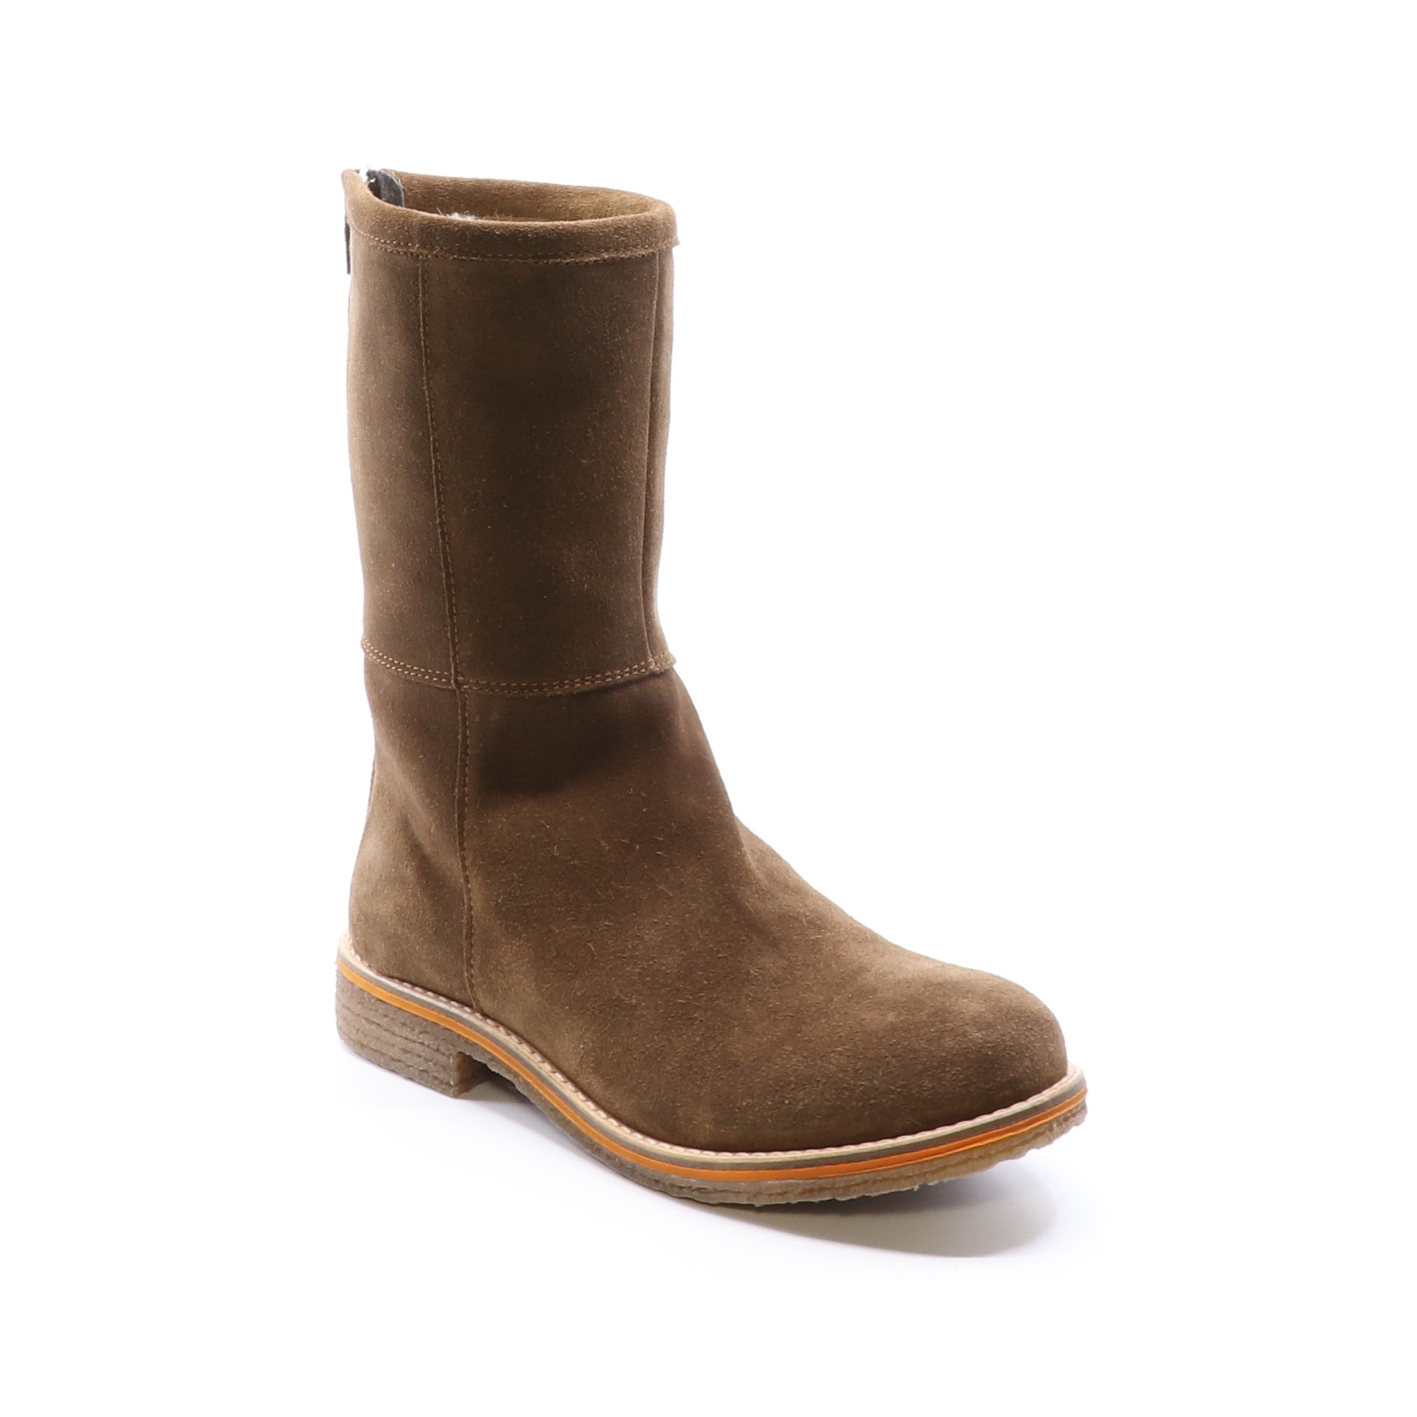 Bos & Co - Bell Waterproof Suede Boot in Tan